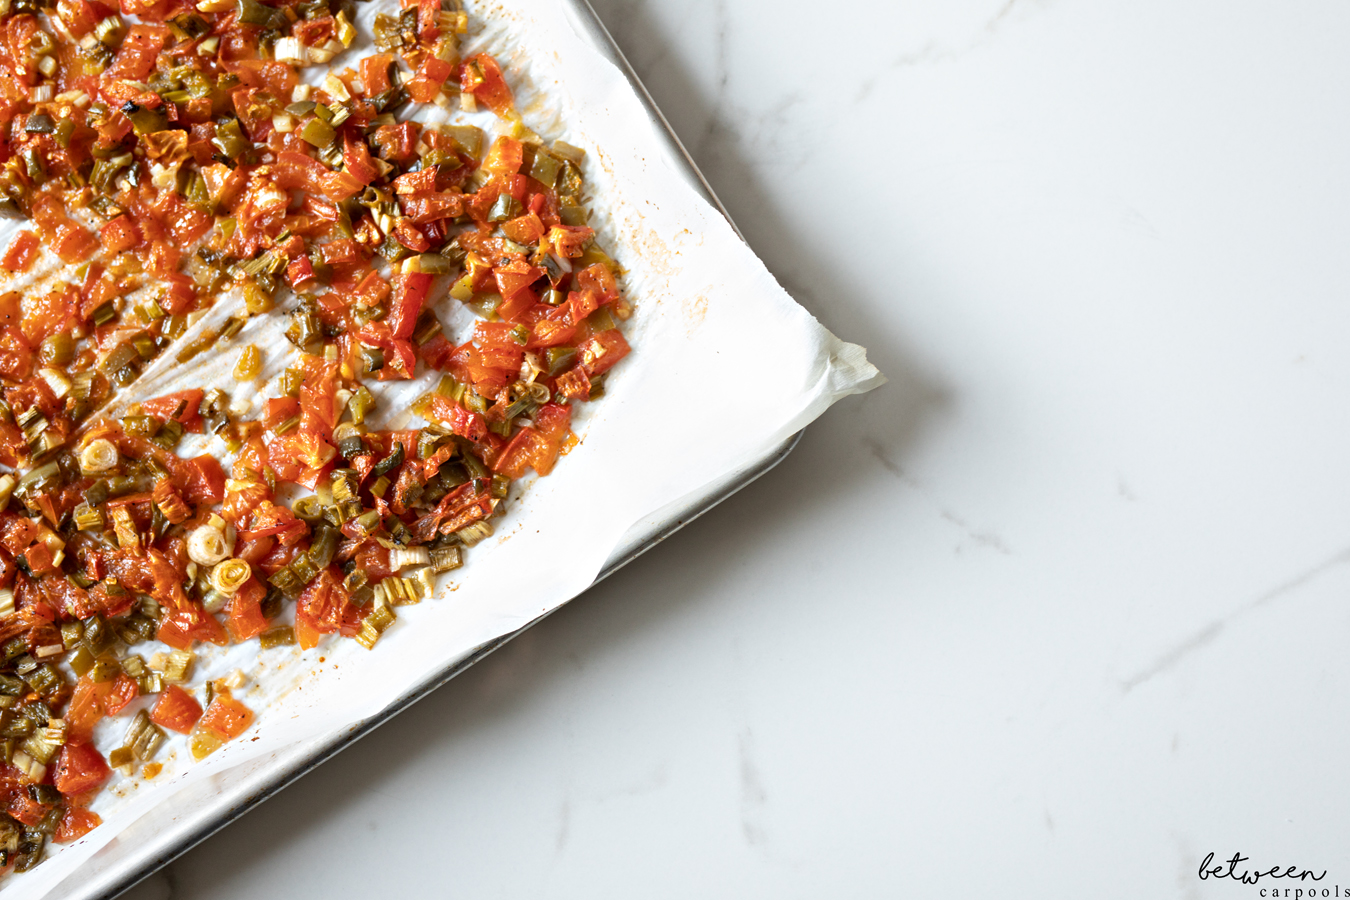 In Honor of Shabbos: Yussi Weisz's Matbucha. This dip is a Shabbos table staple.